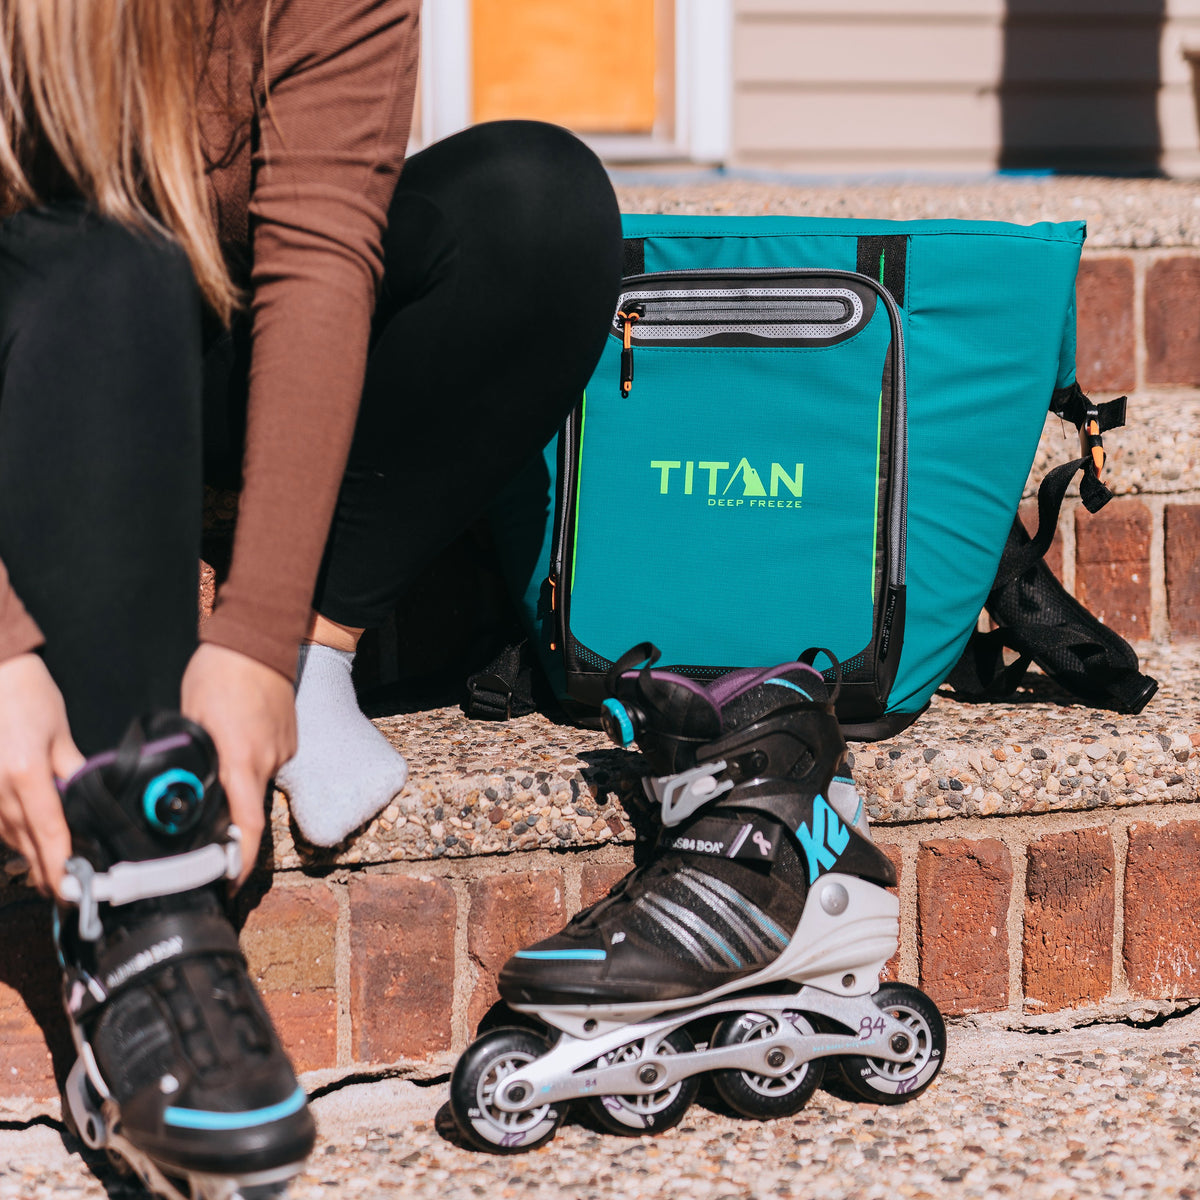 Titan Deep Freeze® 20 Can Rolltop Backpack - Pine - Lifestyle, model rollerskating with cooler